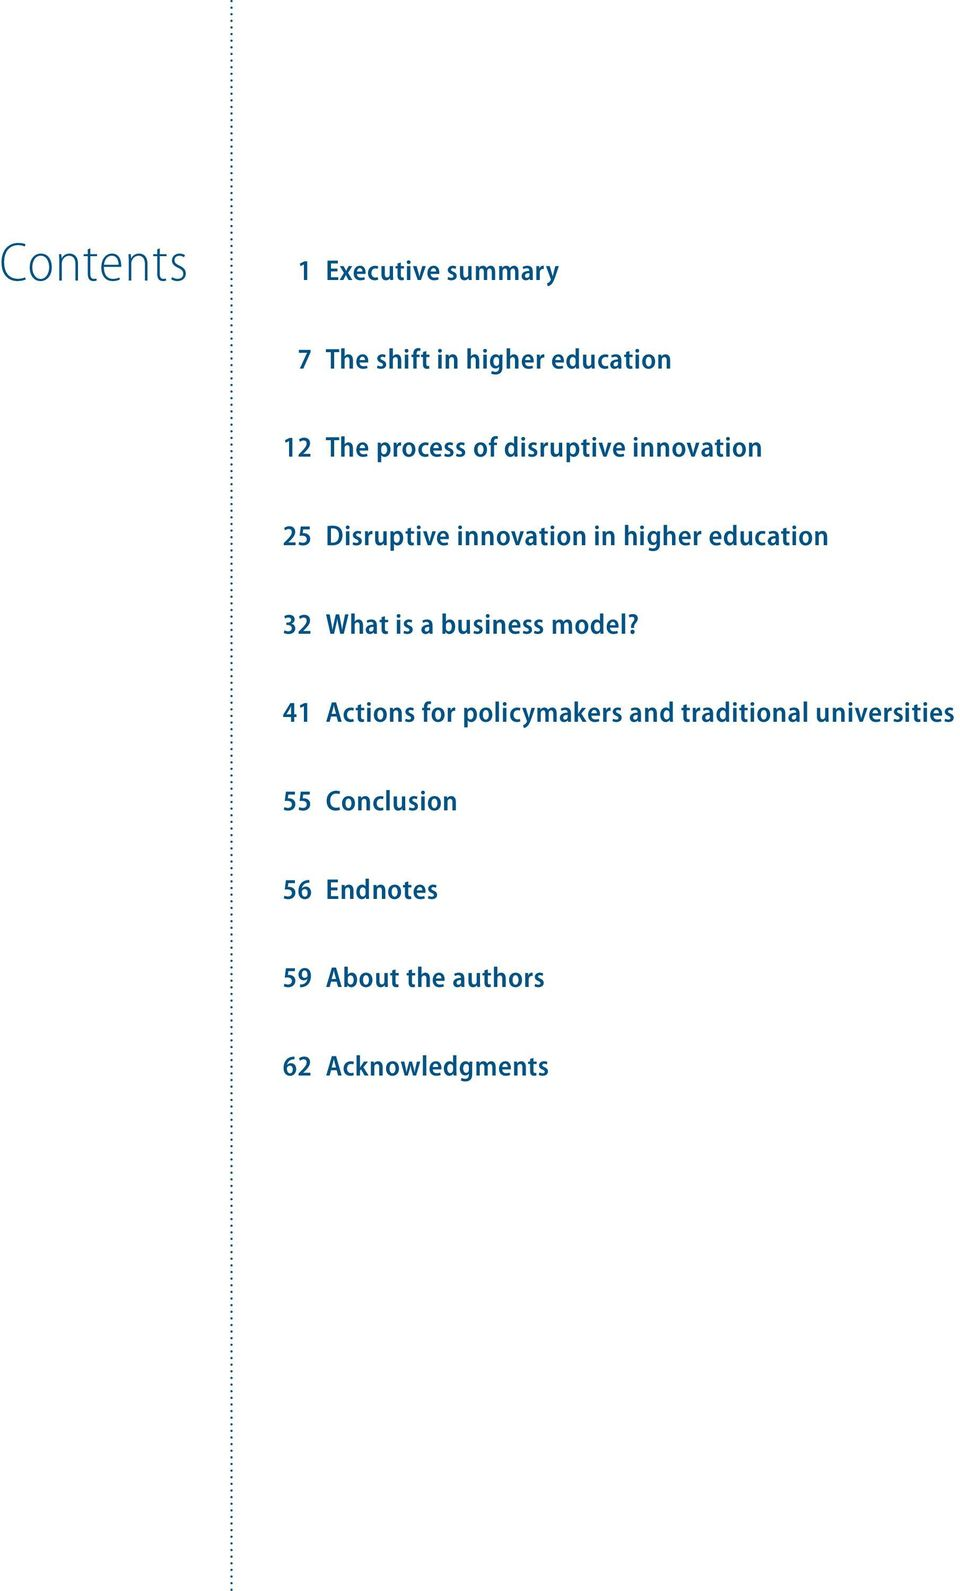 education 32 What is a business model?